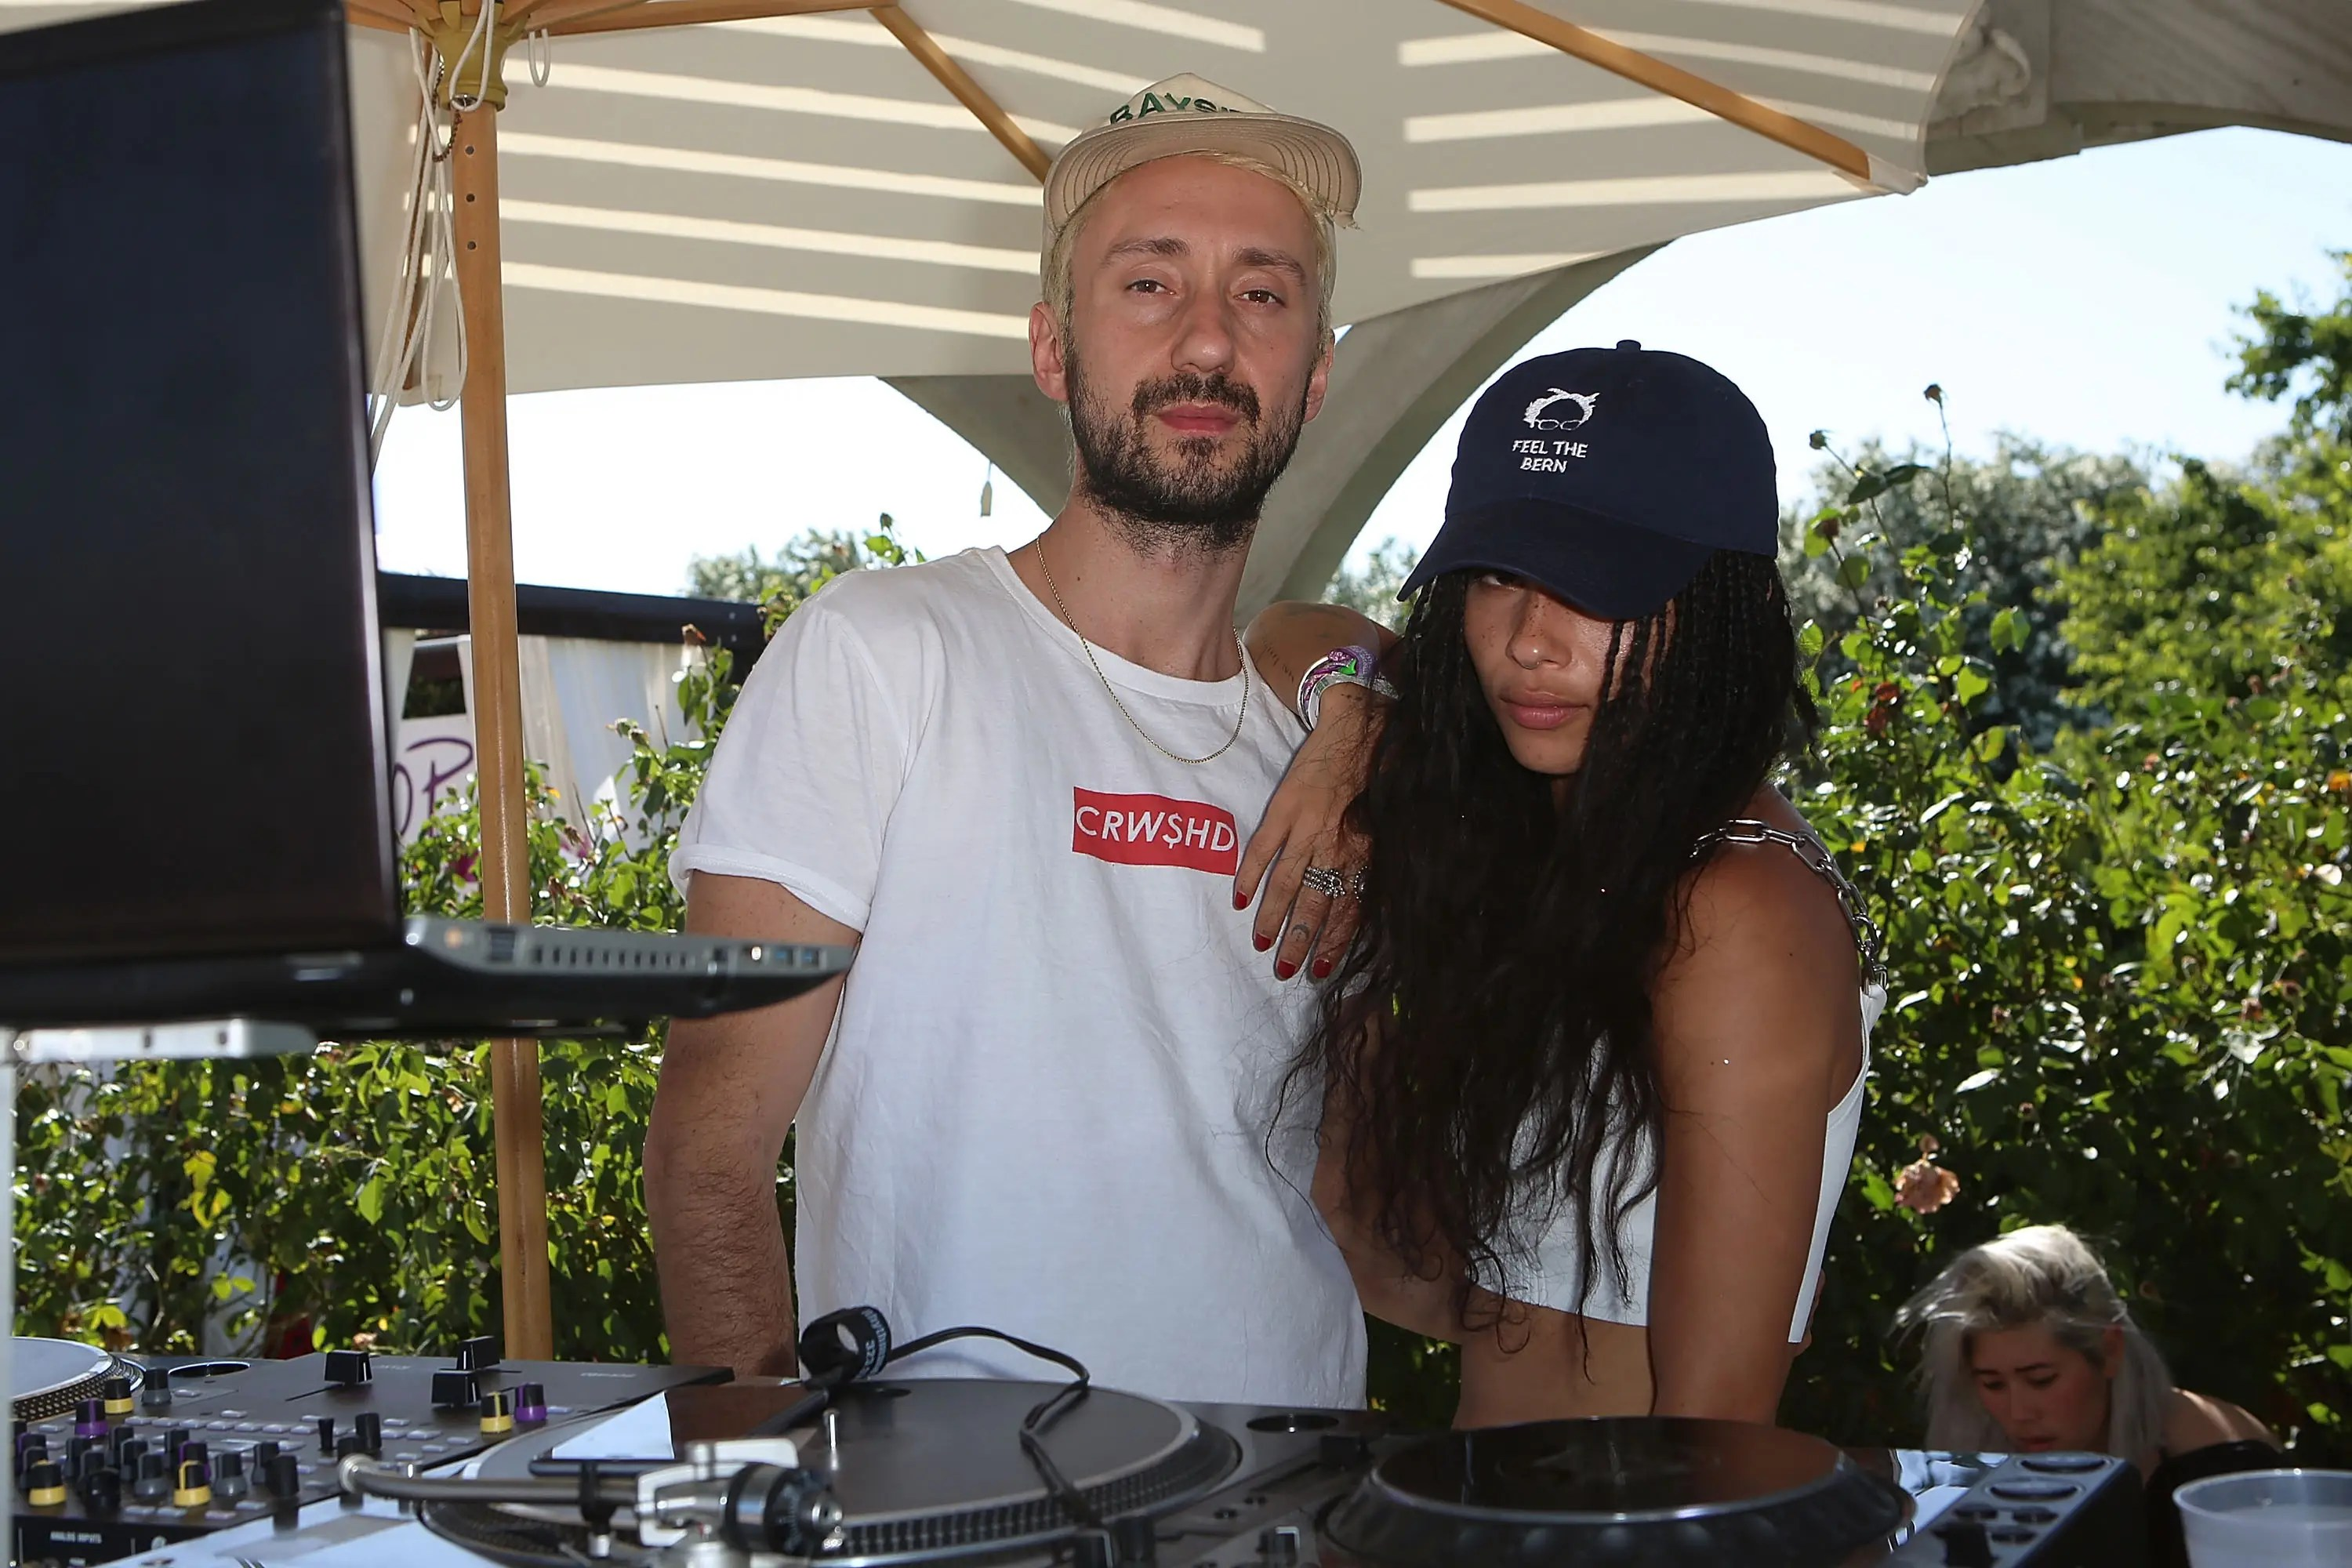 Musician and actress Zoë Isabella Kravitz (daughter of Lenny Kravitz) was behind the DJ booth at REVOLVE Desert House.